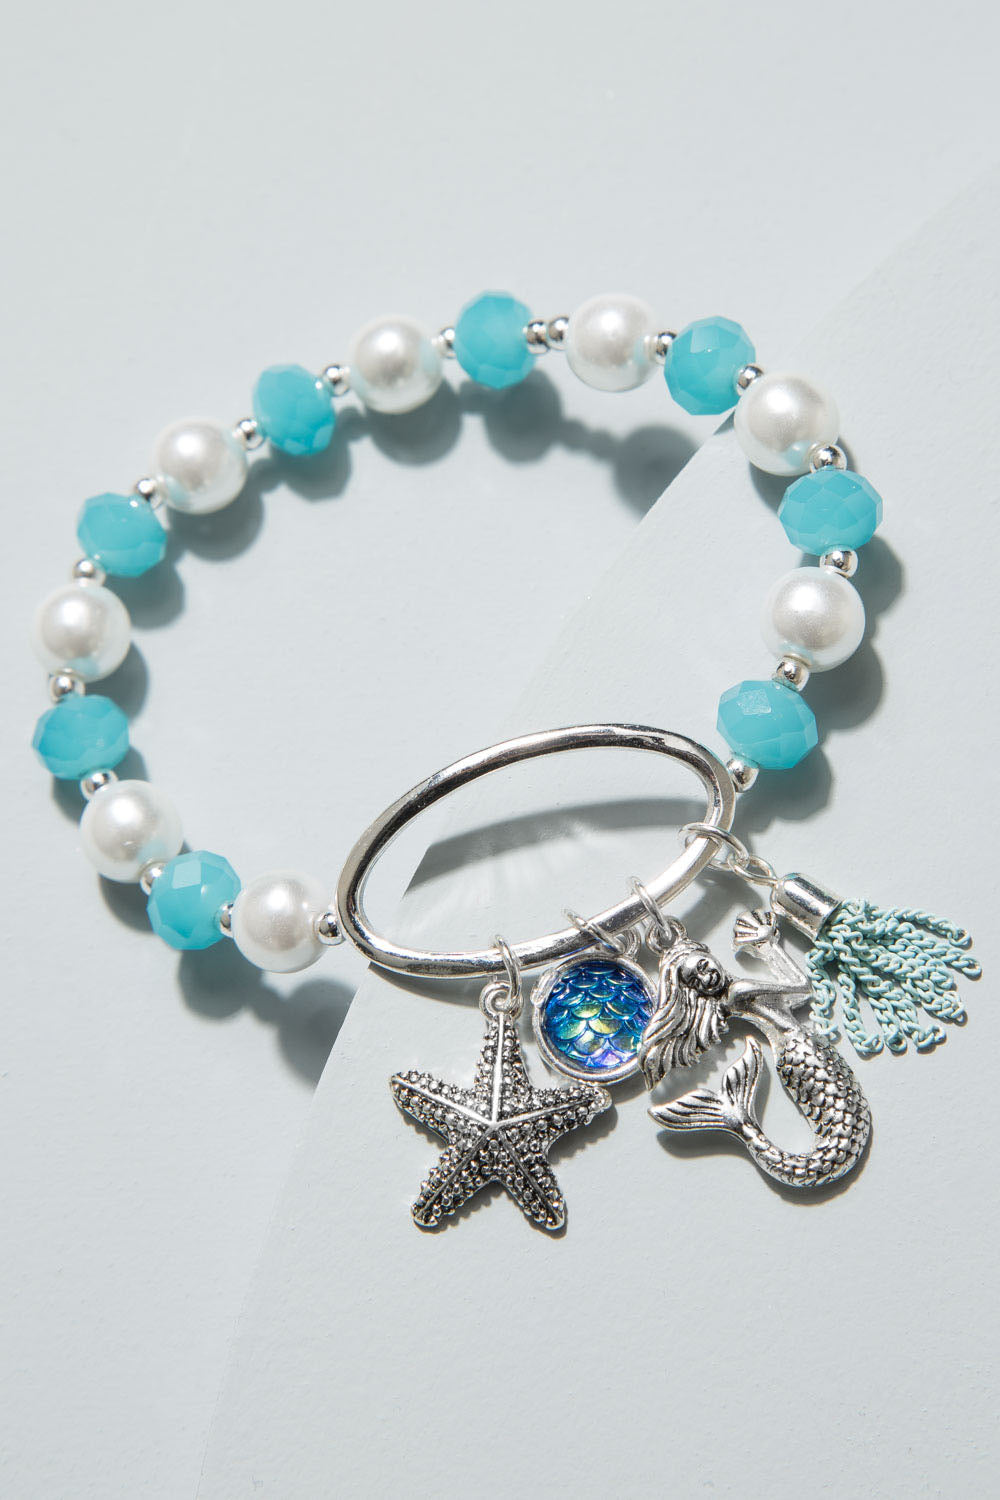 Type 2 Under The Sea Bracelet